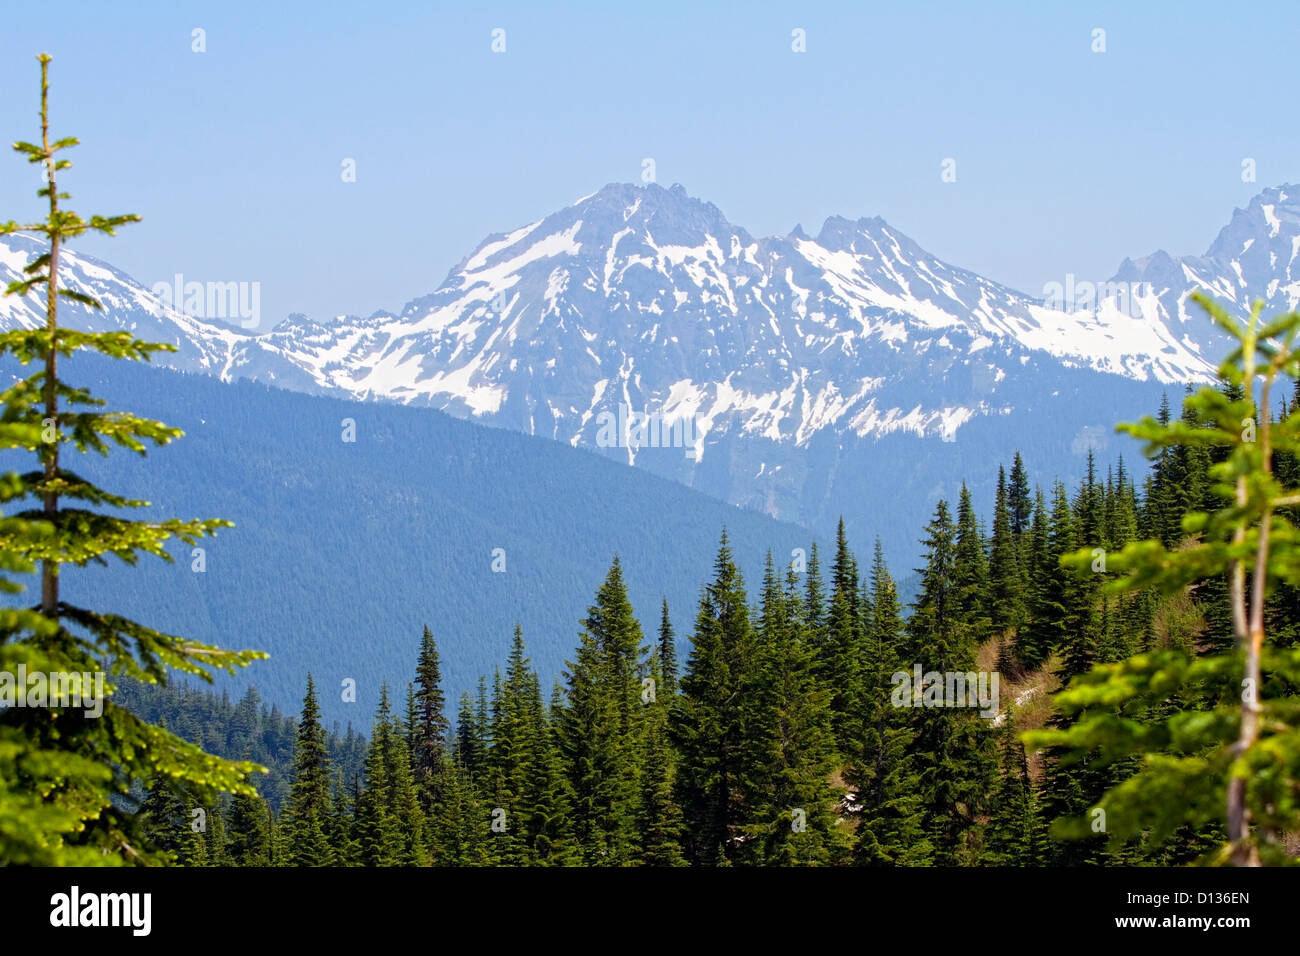 View of mountain peaks from Elk Thurston hike in Chilliwack BC,Canada - Stock Image